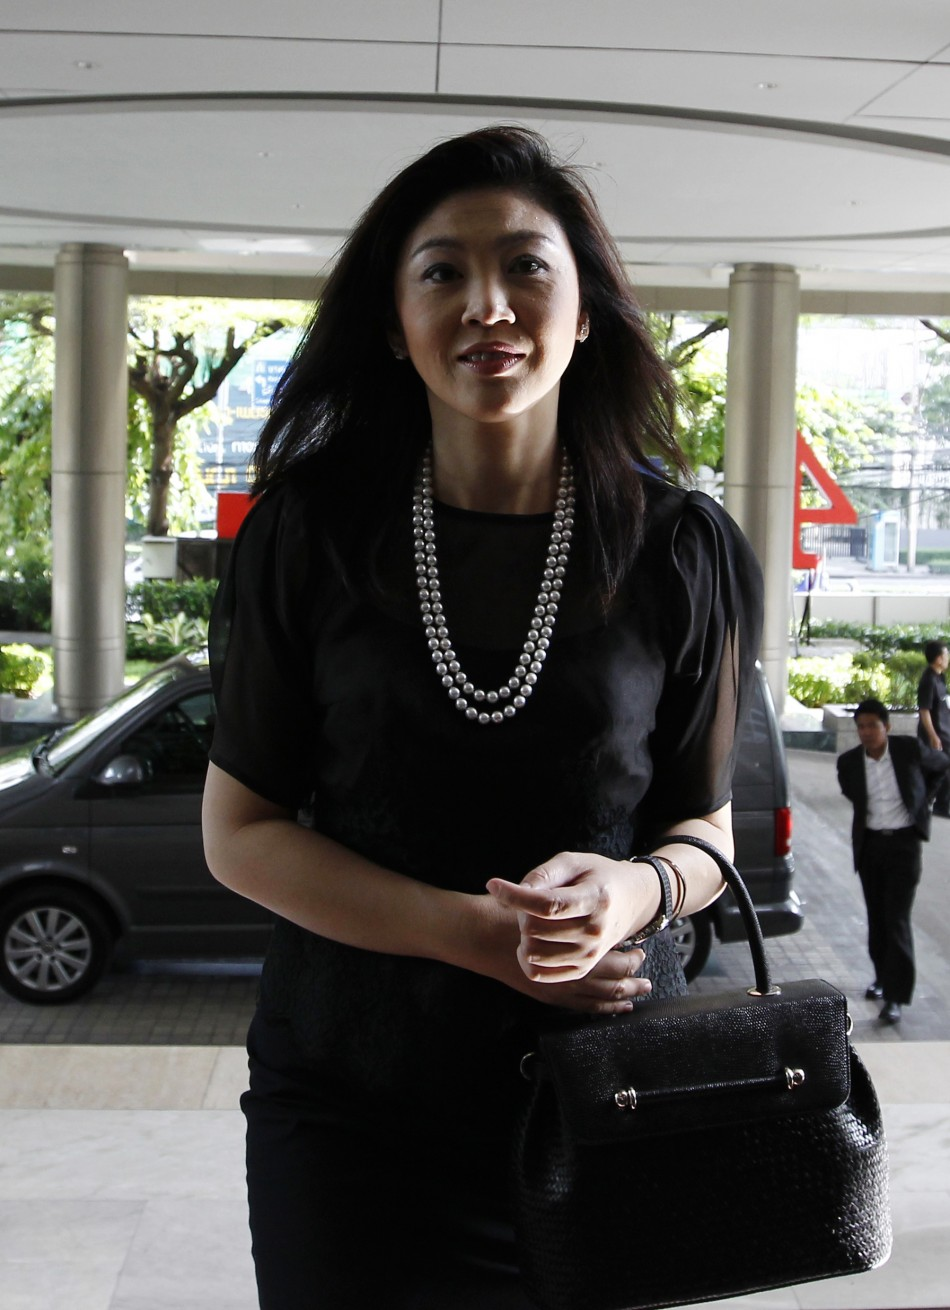 Thailands prime minister elect Yingluck arrives for work at the headquarters of her Puea Thai Party in Bangkok